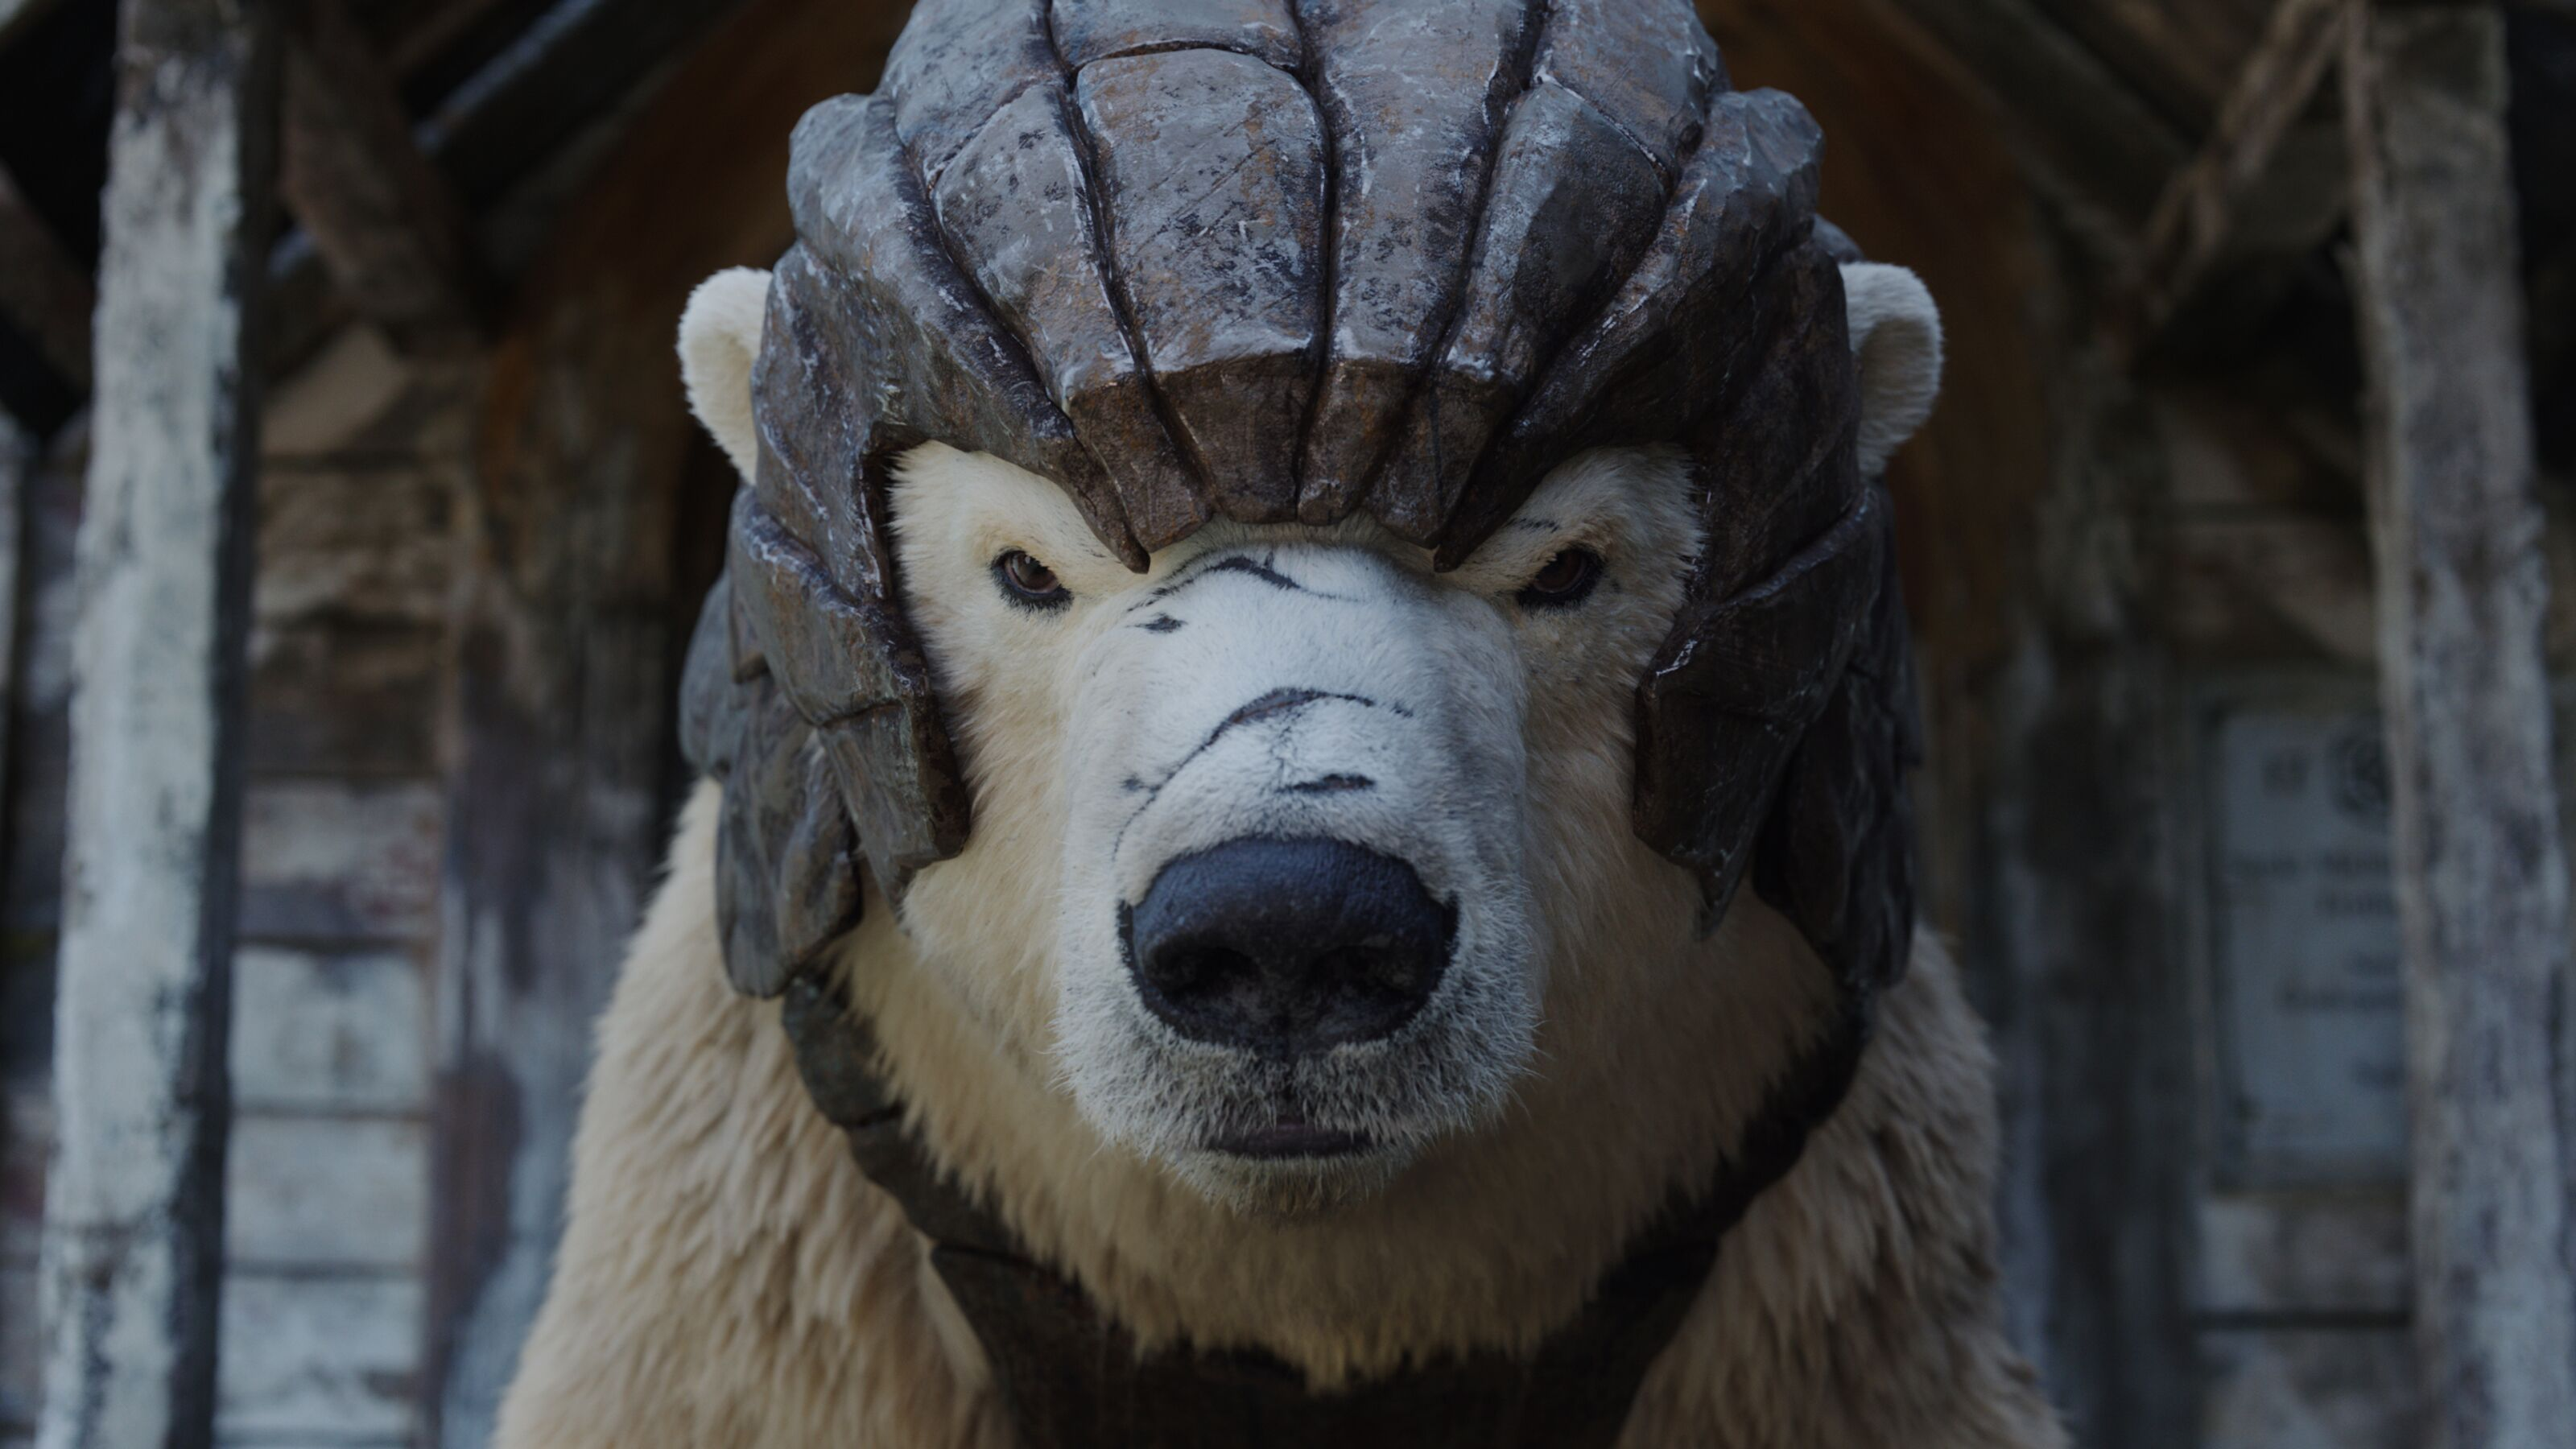 His Dark Materials is officially coming to HBO this November